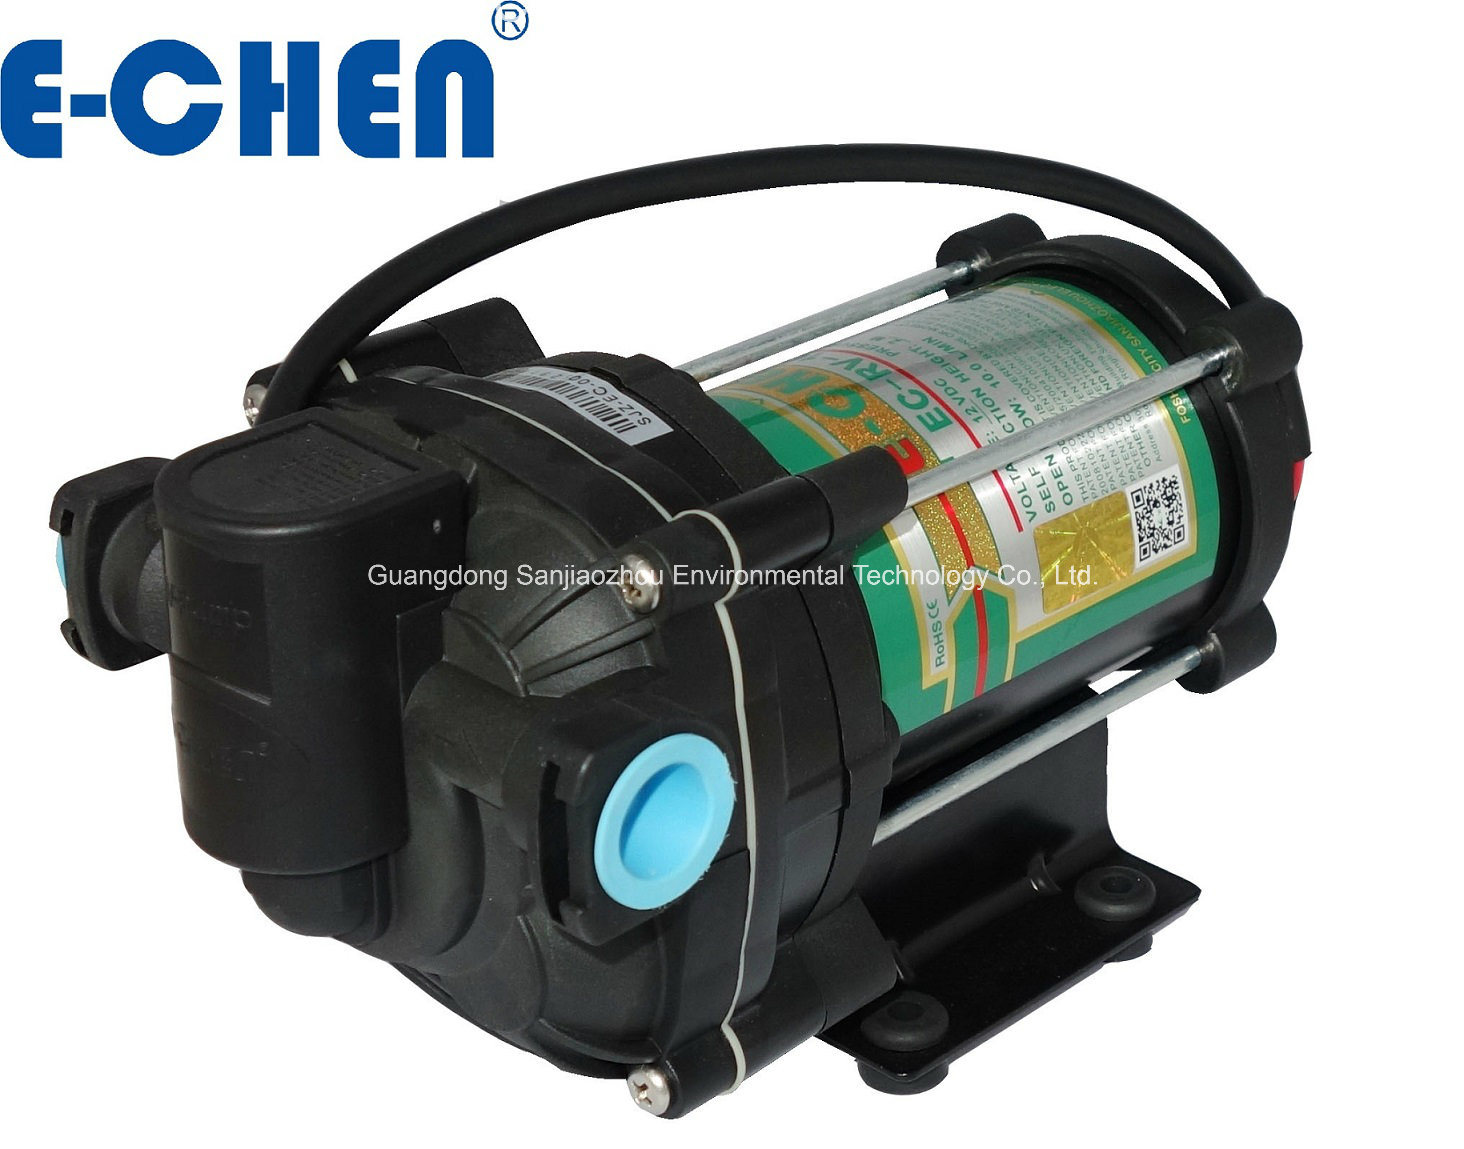 E-Chen RV Series 15L/M Diaphragm Delivery Transfer Water Pump, Self-Priming